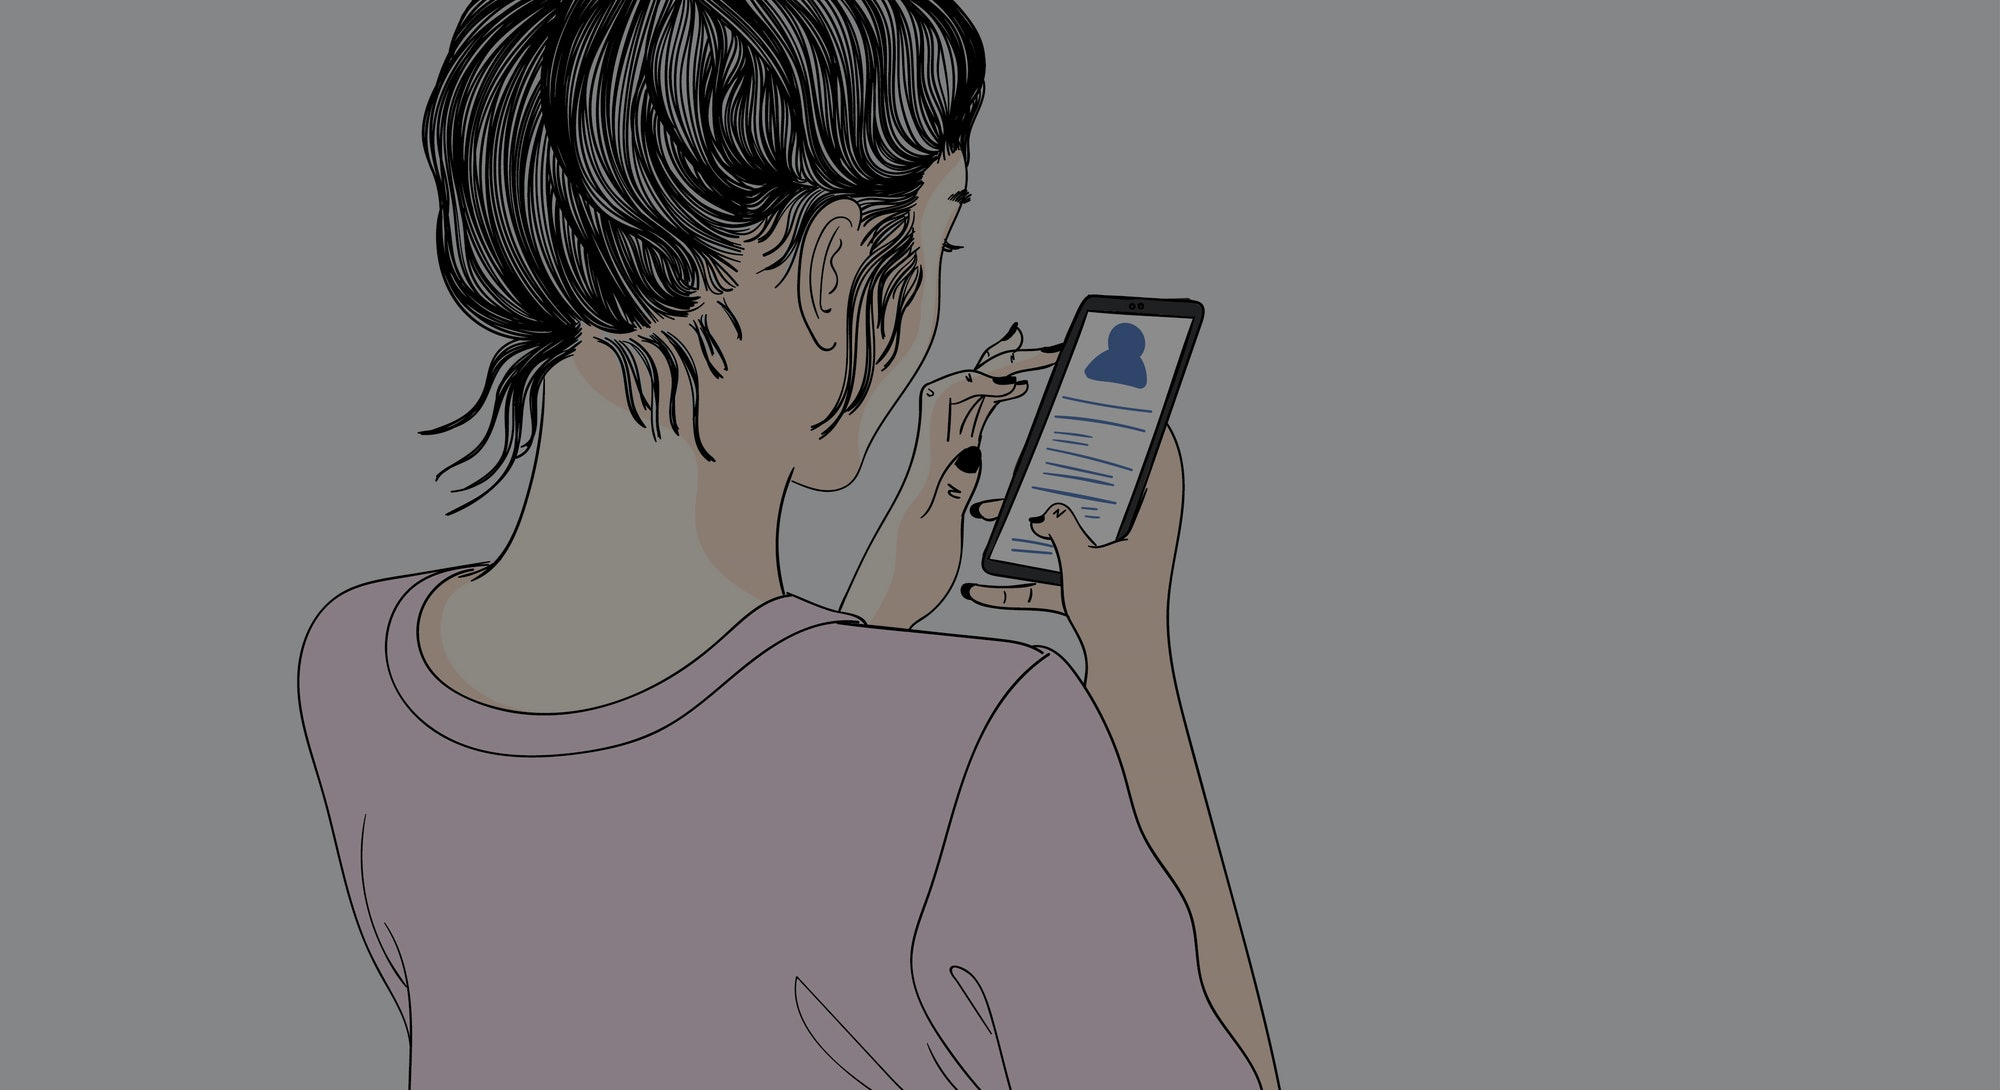 Women are playing smartphones. She talked to friends in social media.Doodle art concept, illustration painting .